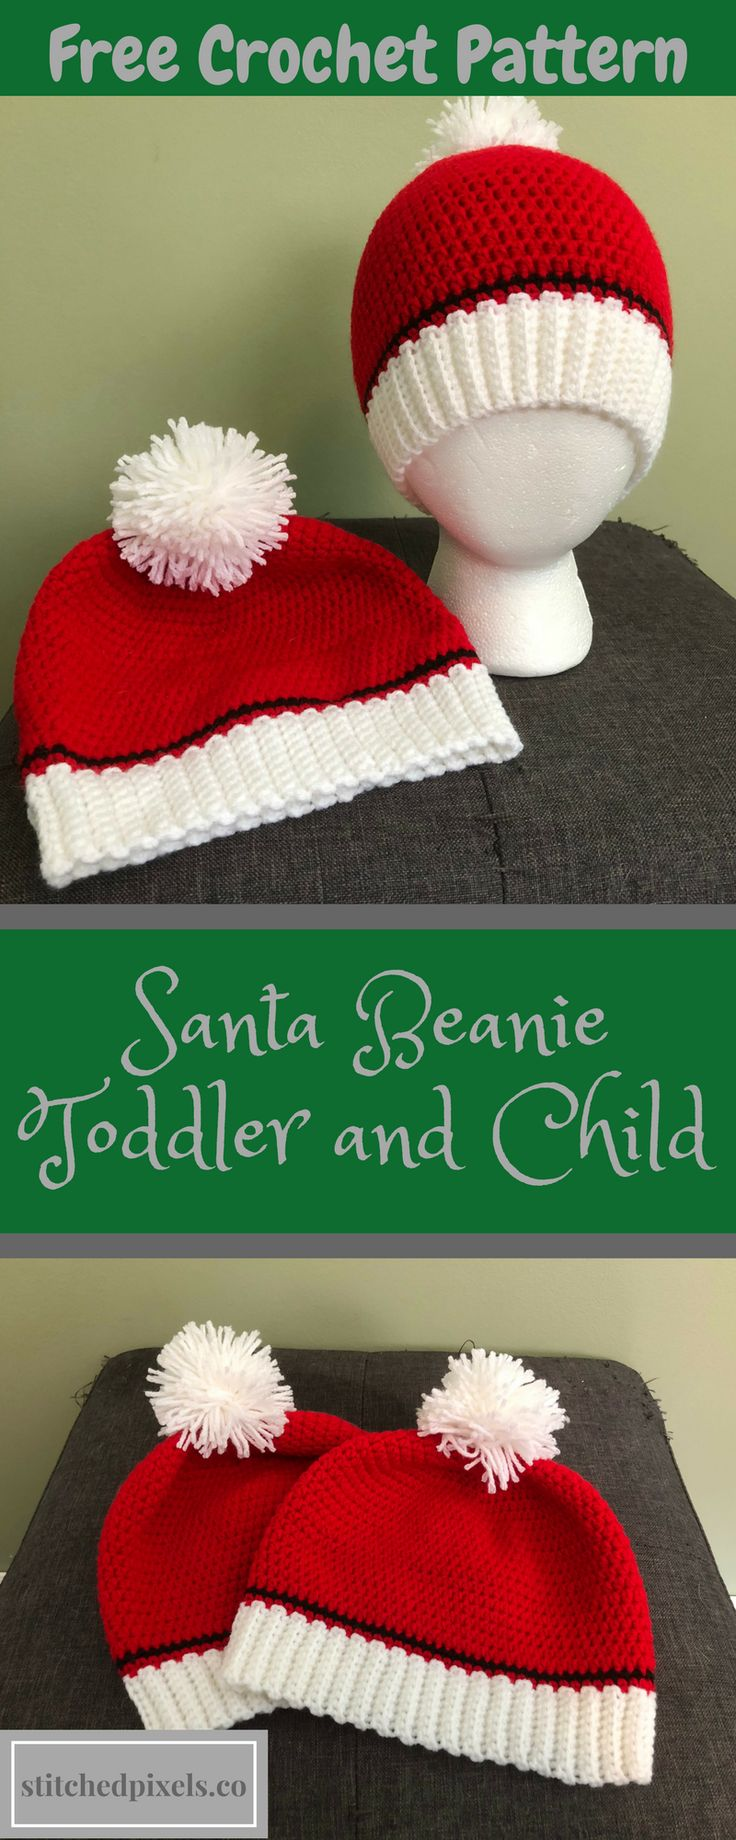 Stay festive this holiday season with this free crochet pattern! Make an adorable Santa Beanie for all the little ones in your life! They work up fast, and are suitable for beginners.